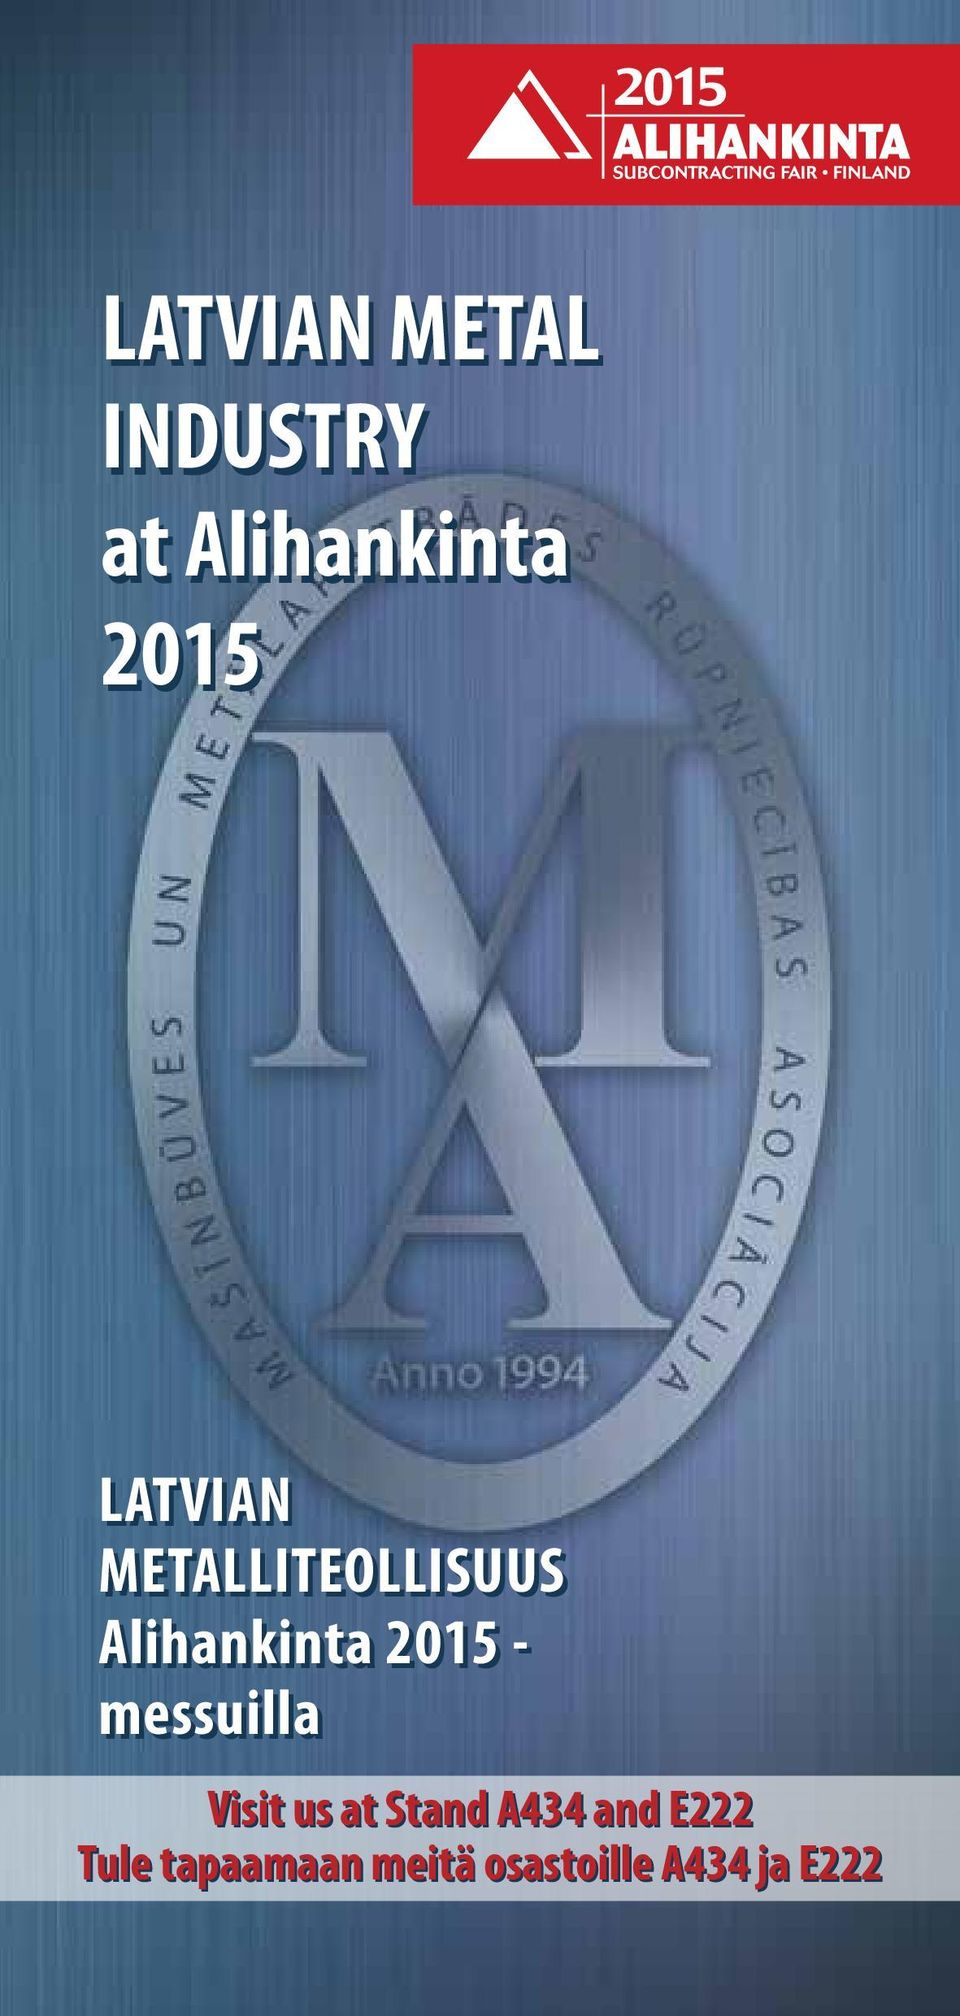 Alihankinta 2015 - messuilla Visit us at